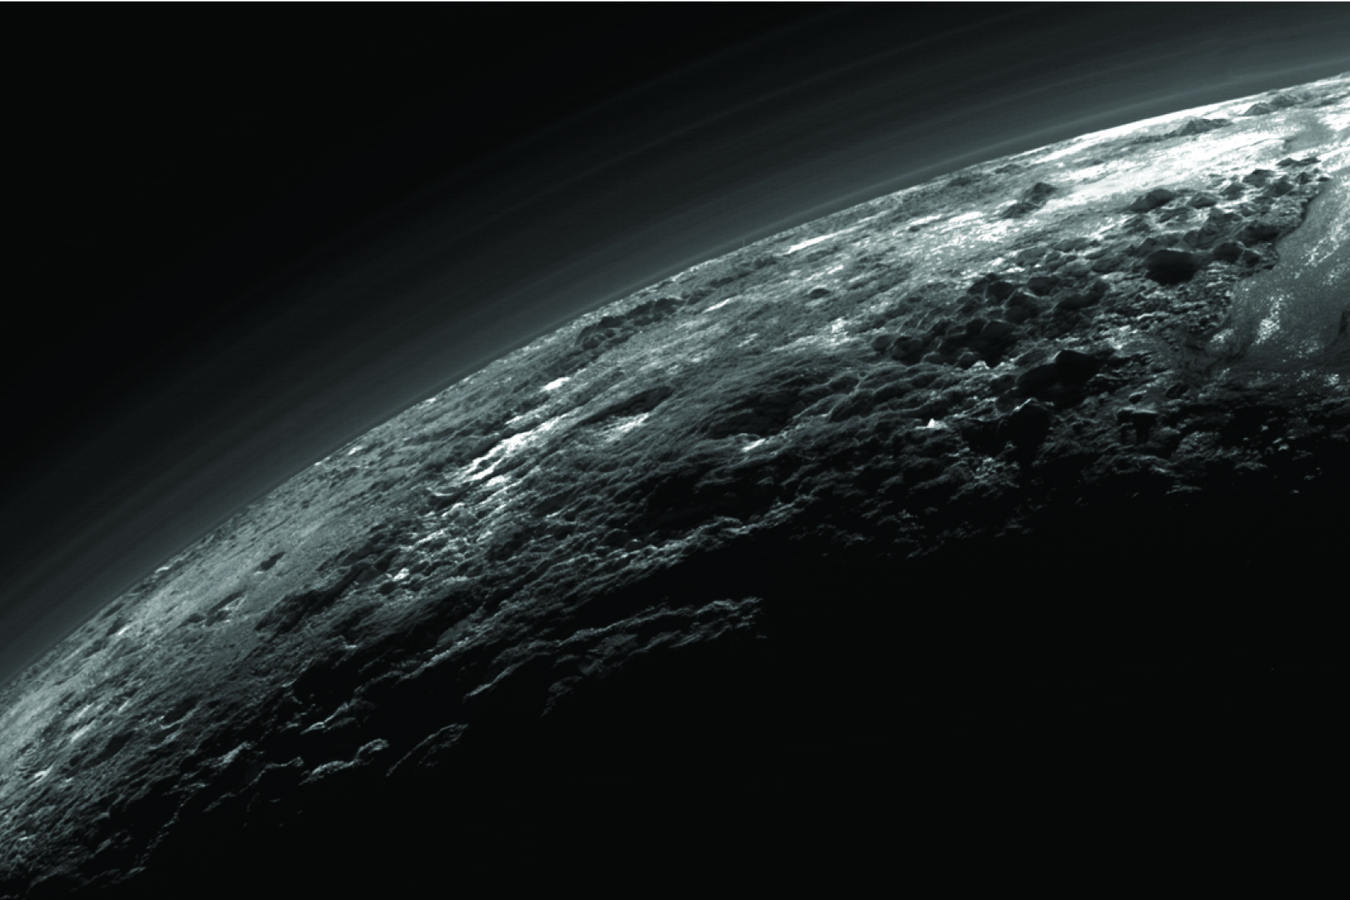 New Horizons scientists have written the first comprehensive set of papers describing results from the spacecraft's flyby of the Pluto system last summer.